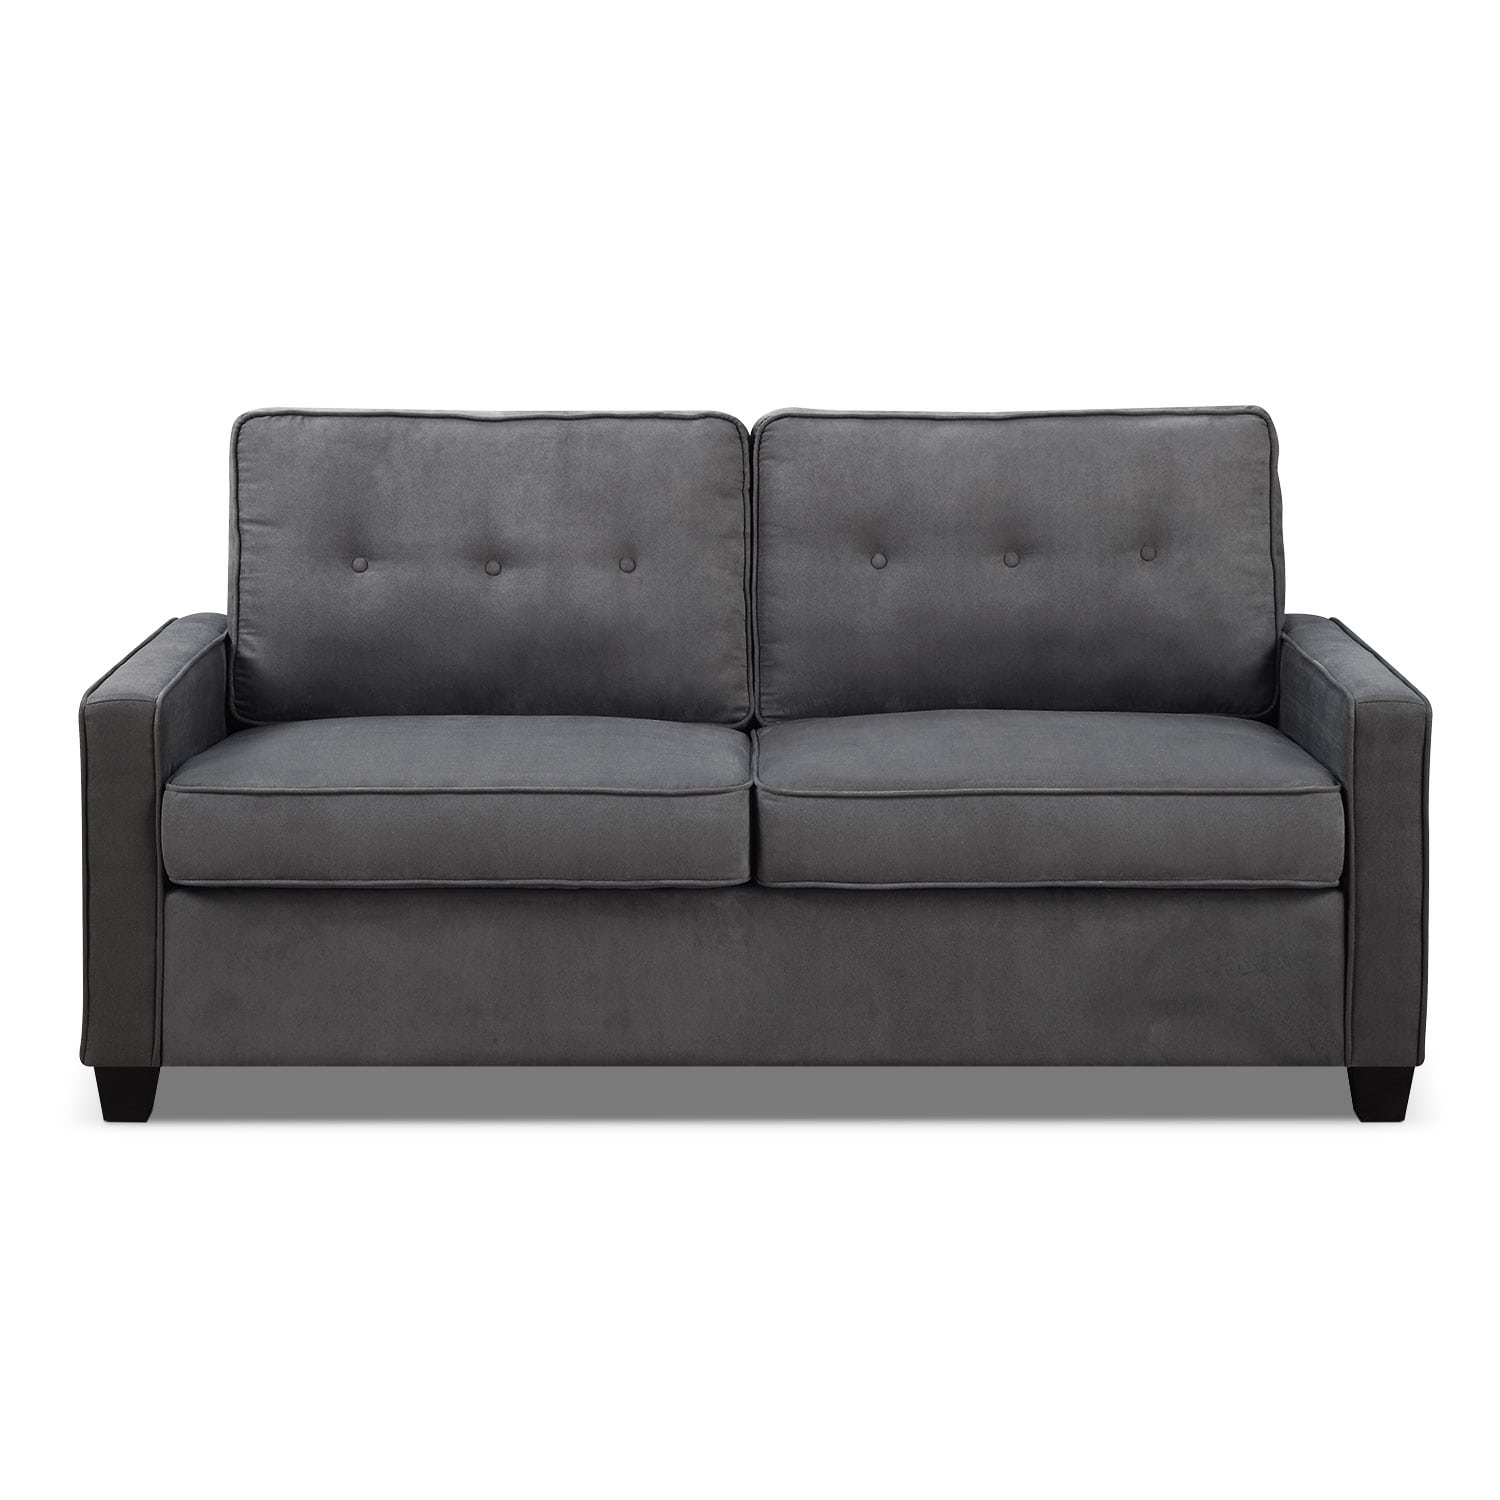 Conway Sofa Gray Value City Furniture